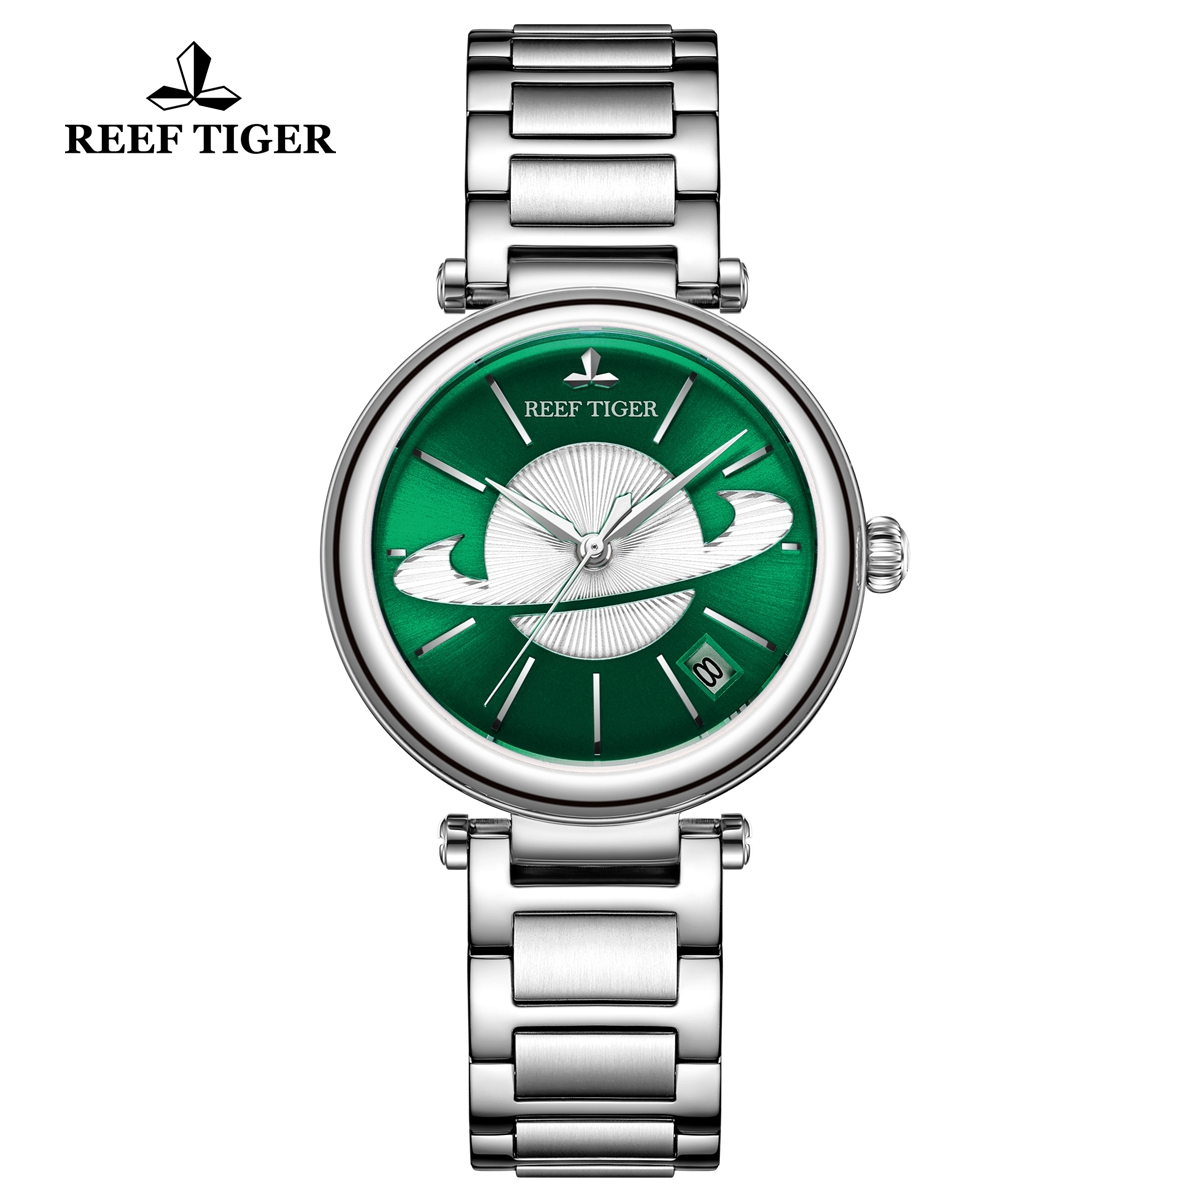 Reef Tiger Love Saturn Fashion Lady Watch Steel Green Dial Automatic Watch RGA1591-YGY